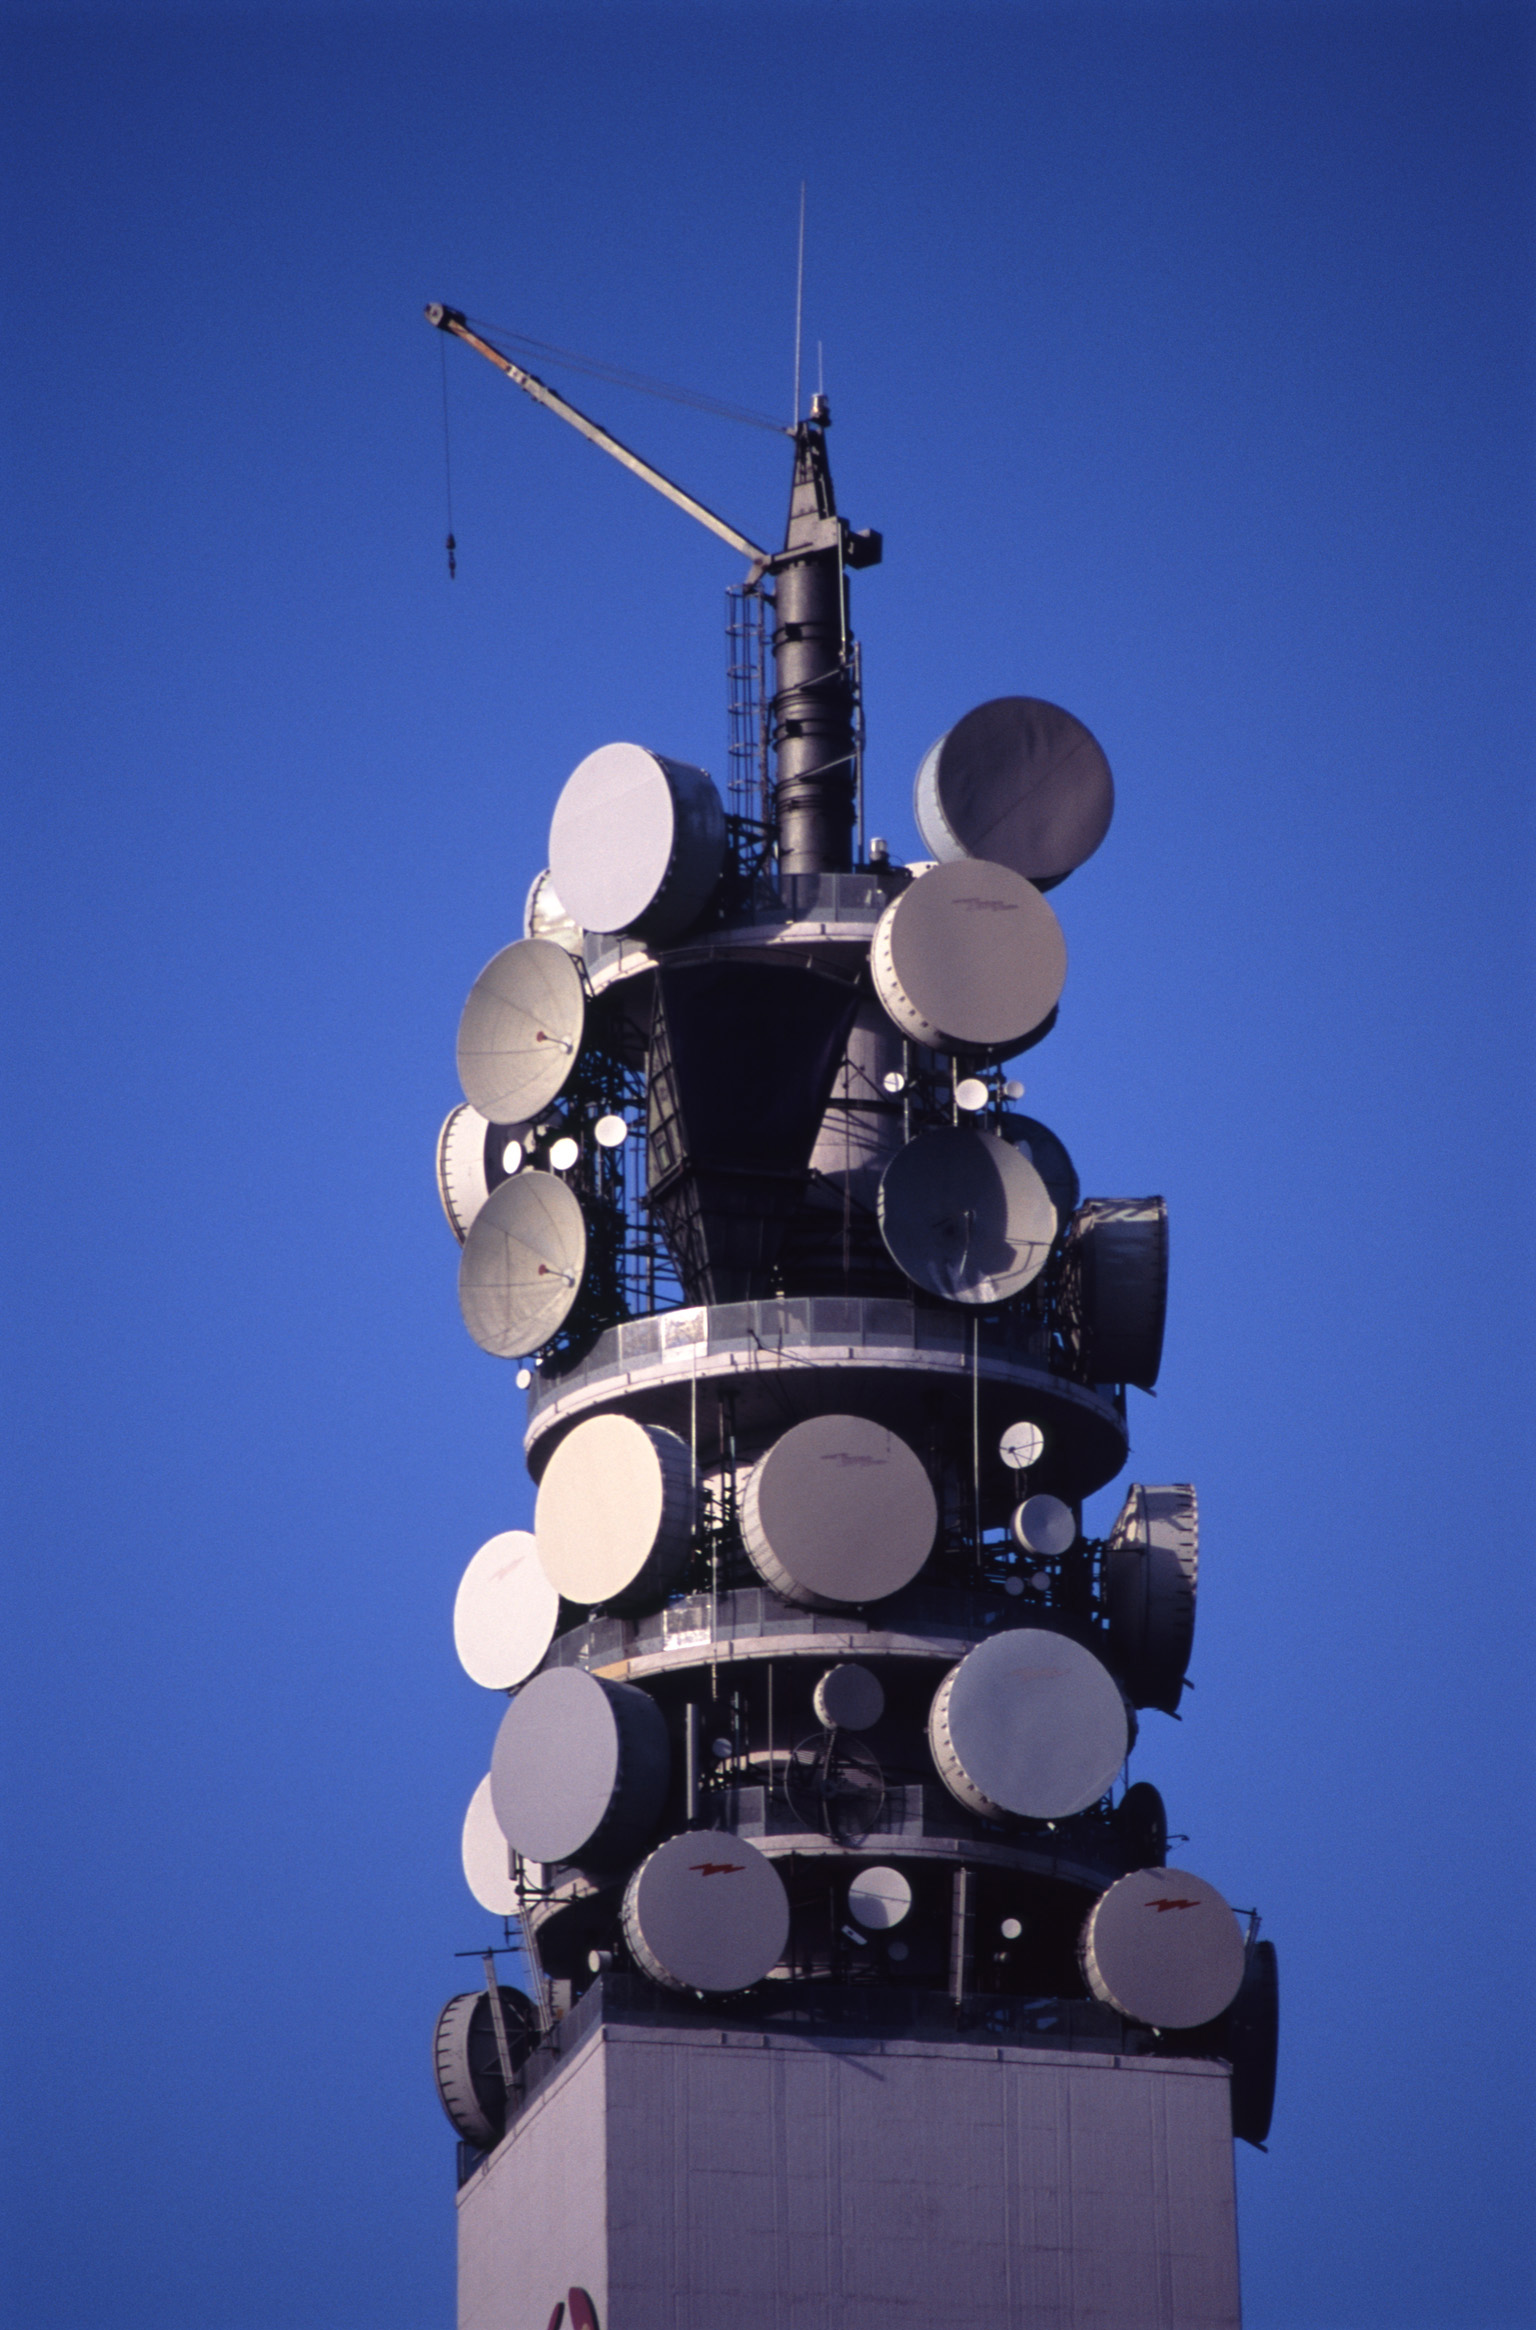 Telecommunications tower with dishes and antennae for reception and broadcasting of wireless radio waves against a clear blue sky